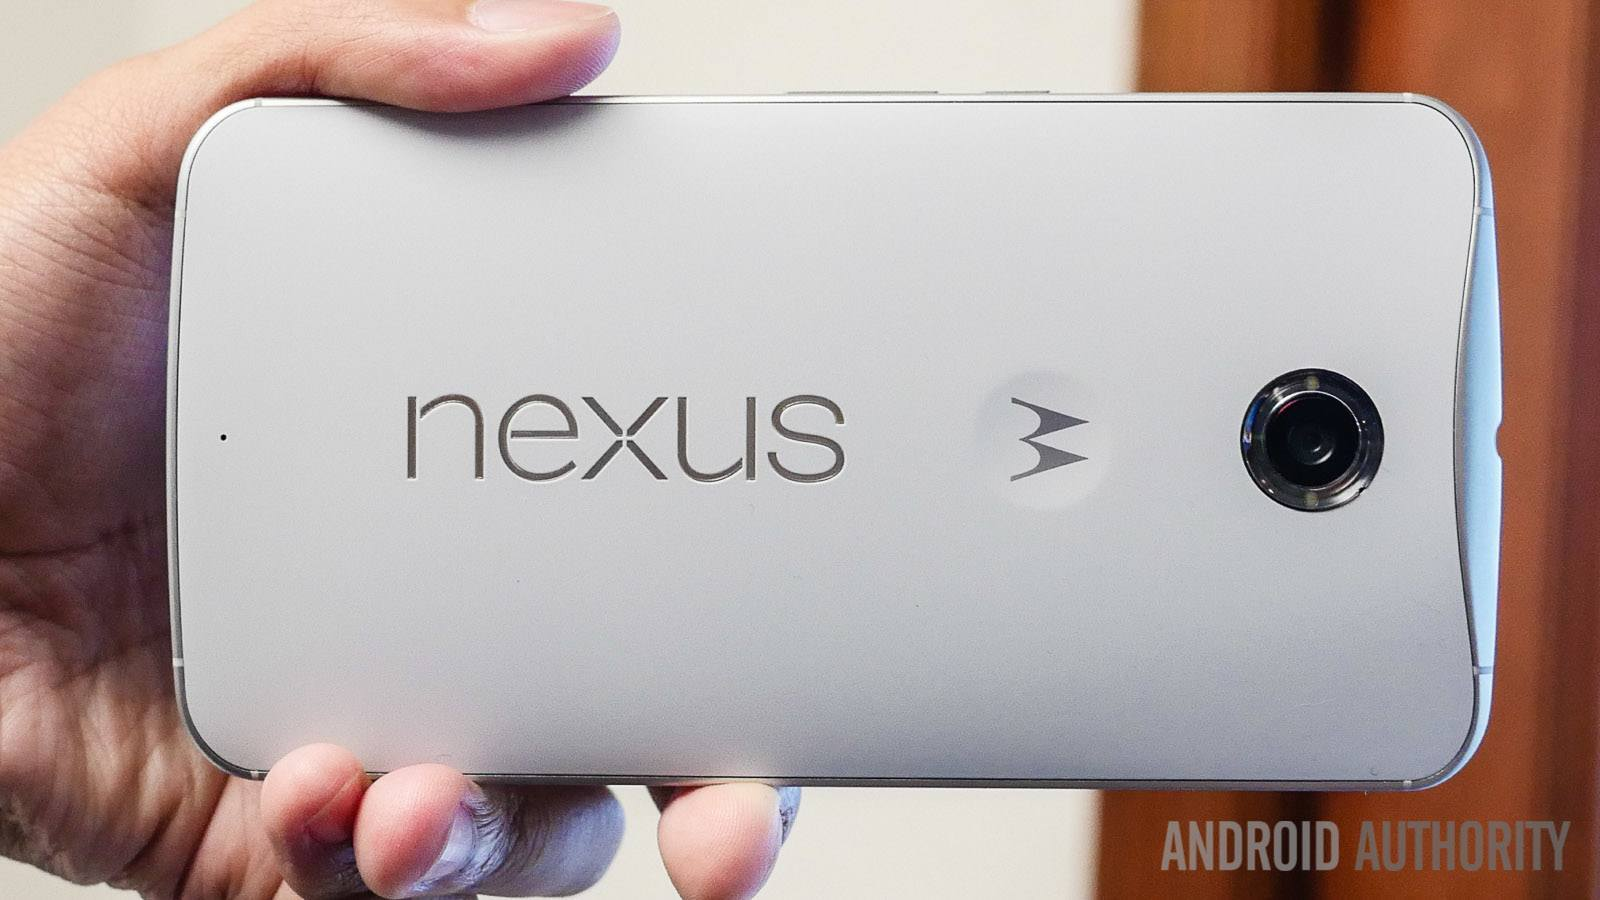 nexus 6 first impressions (19 of 21)